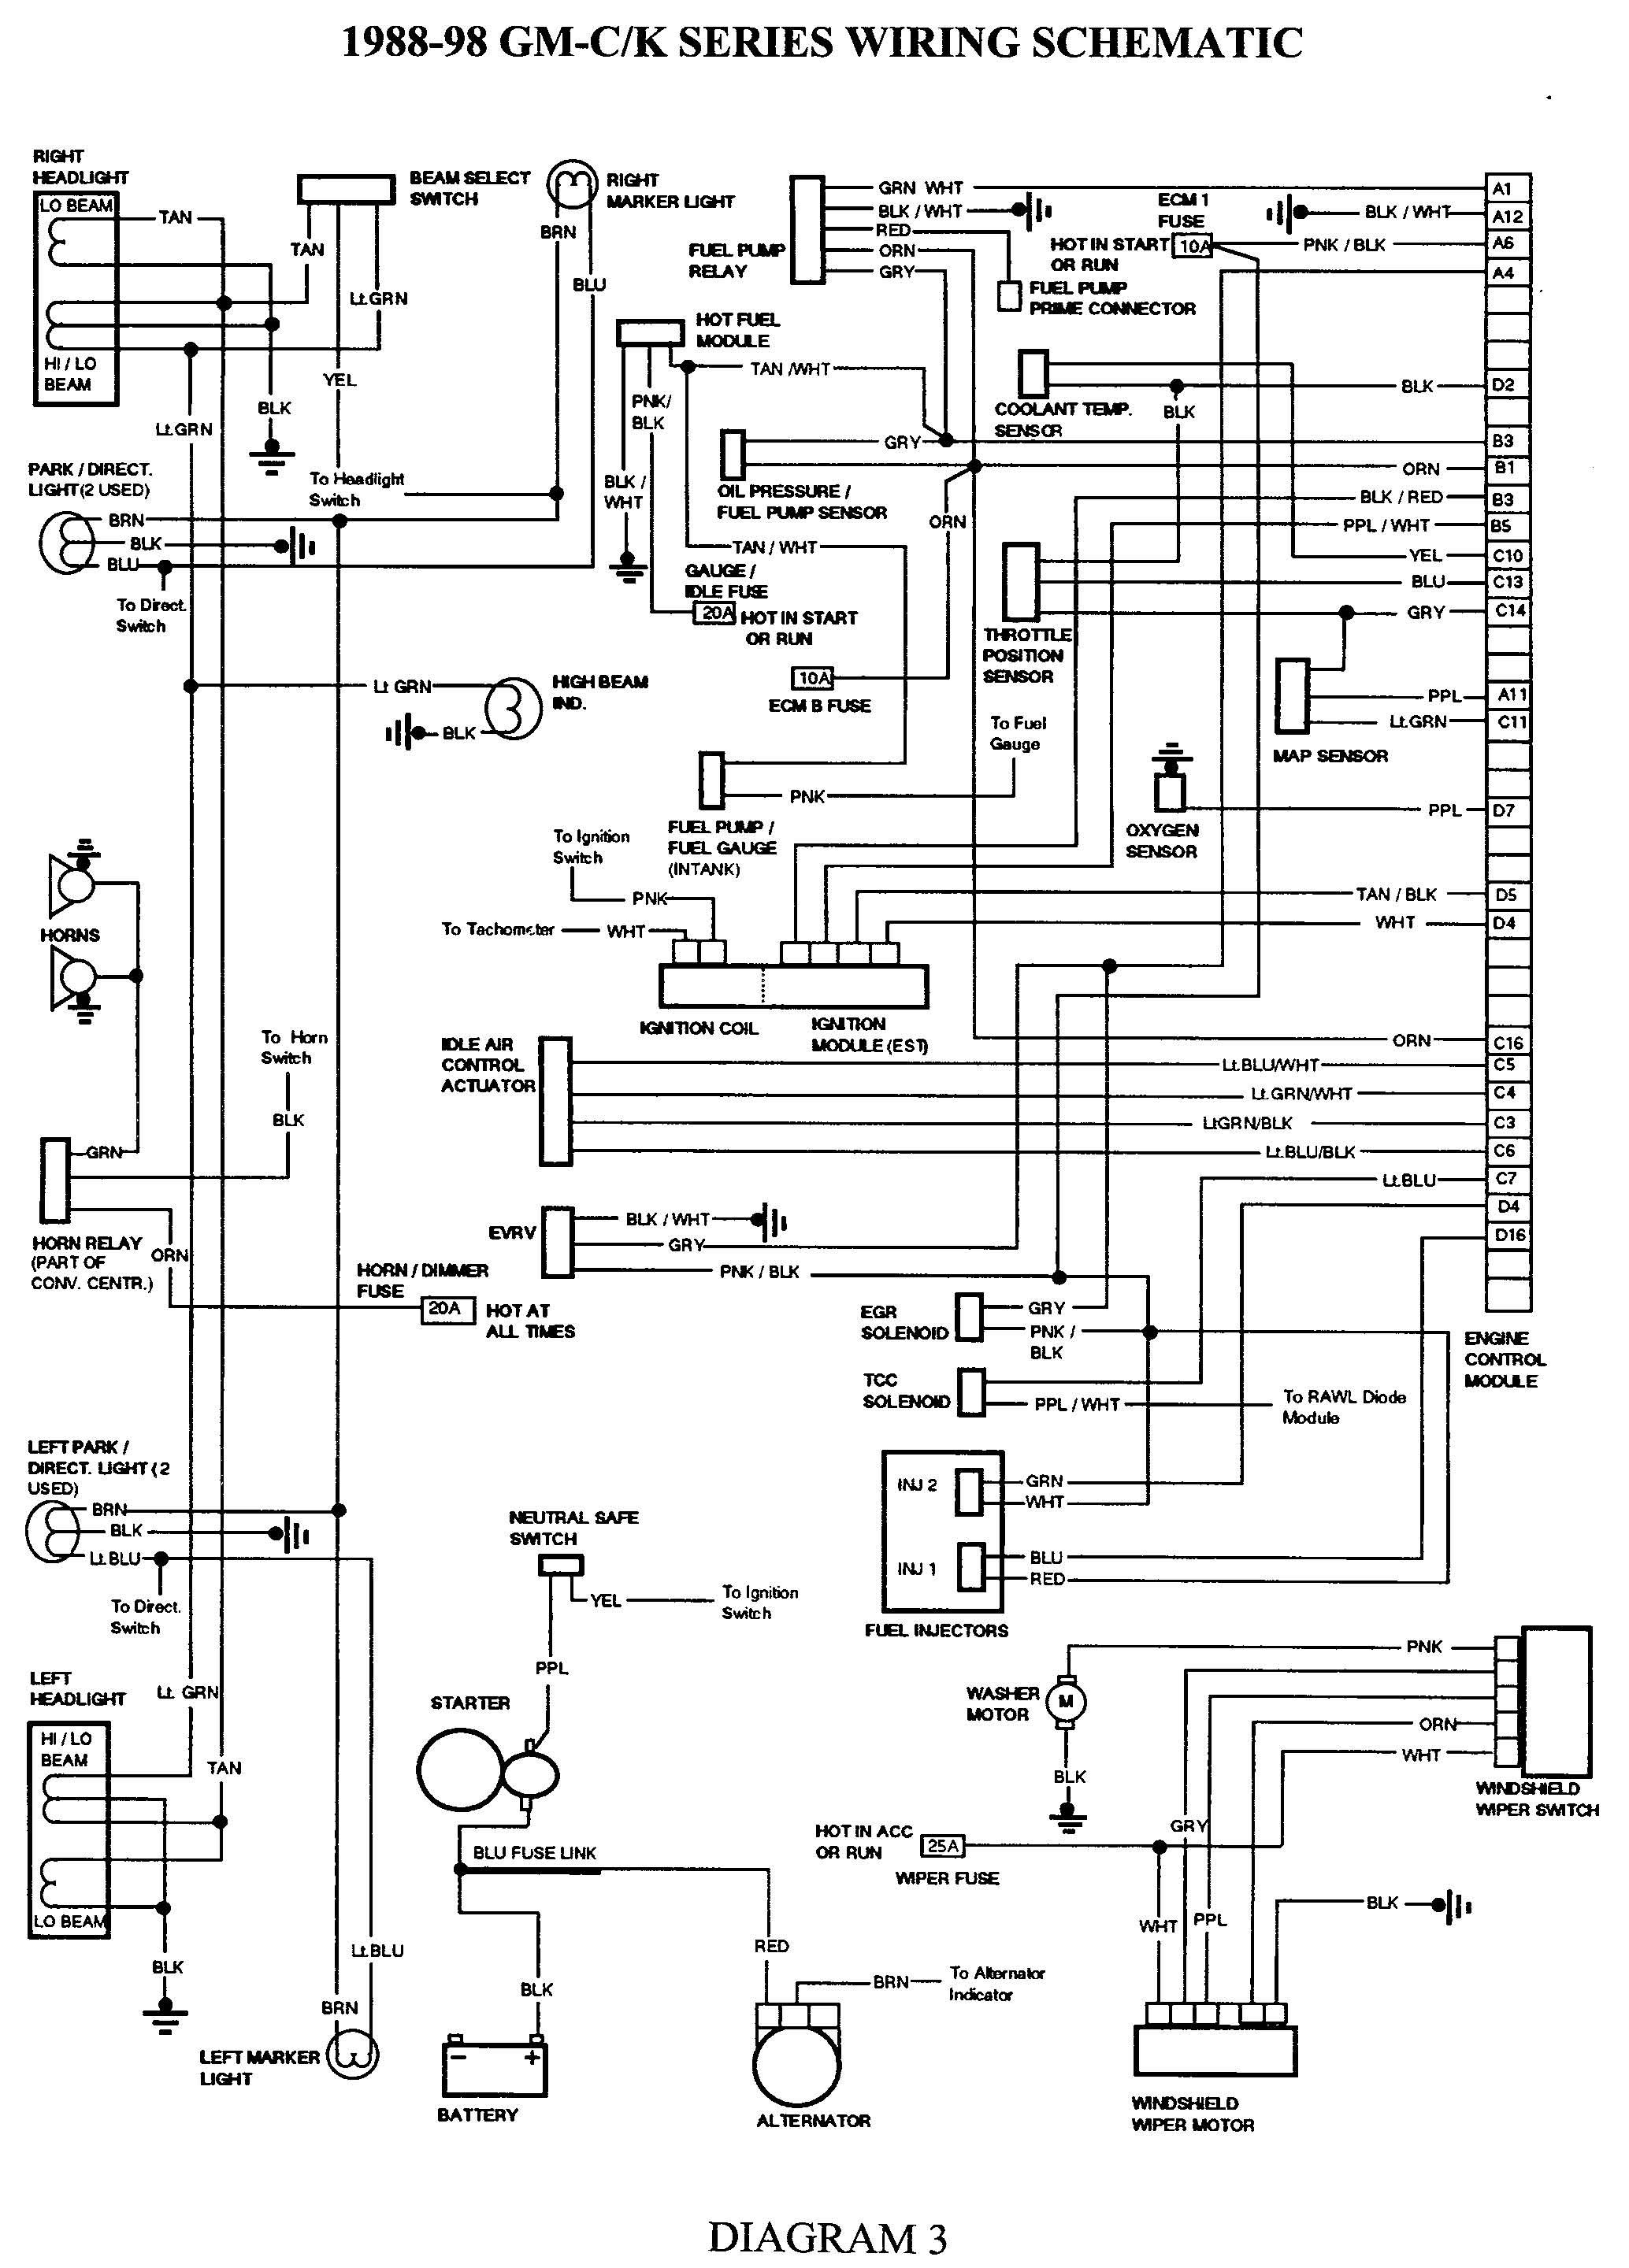 gmc truck wiring diagrams on gm wiring harness diagram 88 98 kc isuzu rodeo wiring schematic 98 silverado power door lock  [ 2068 x 2880 Pixel ]